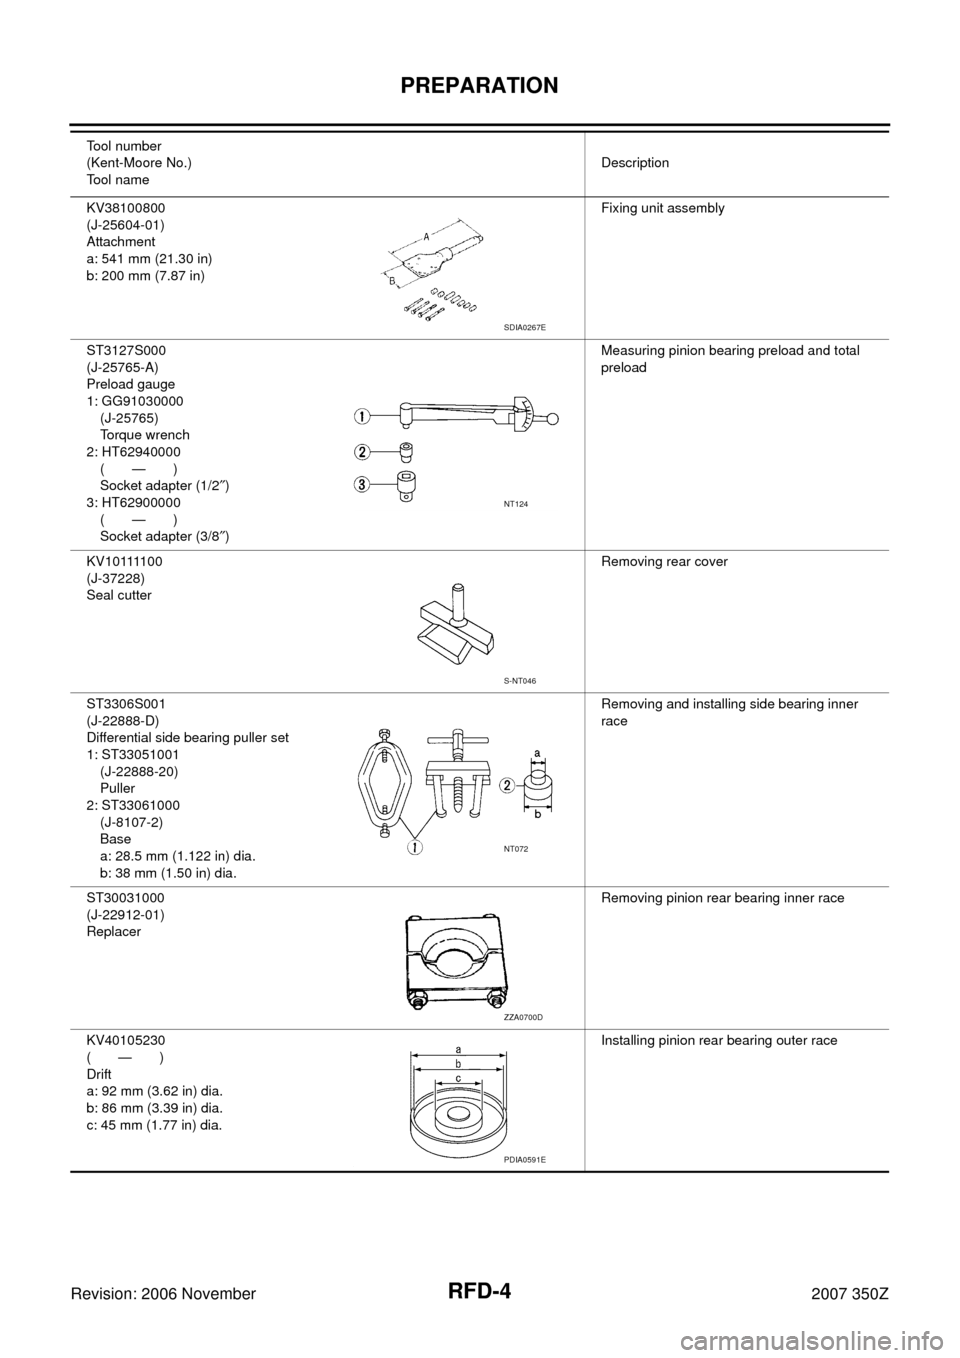 NISSAN 350Z 2007 Z33 Rear Final Drive Workshop Manual